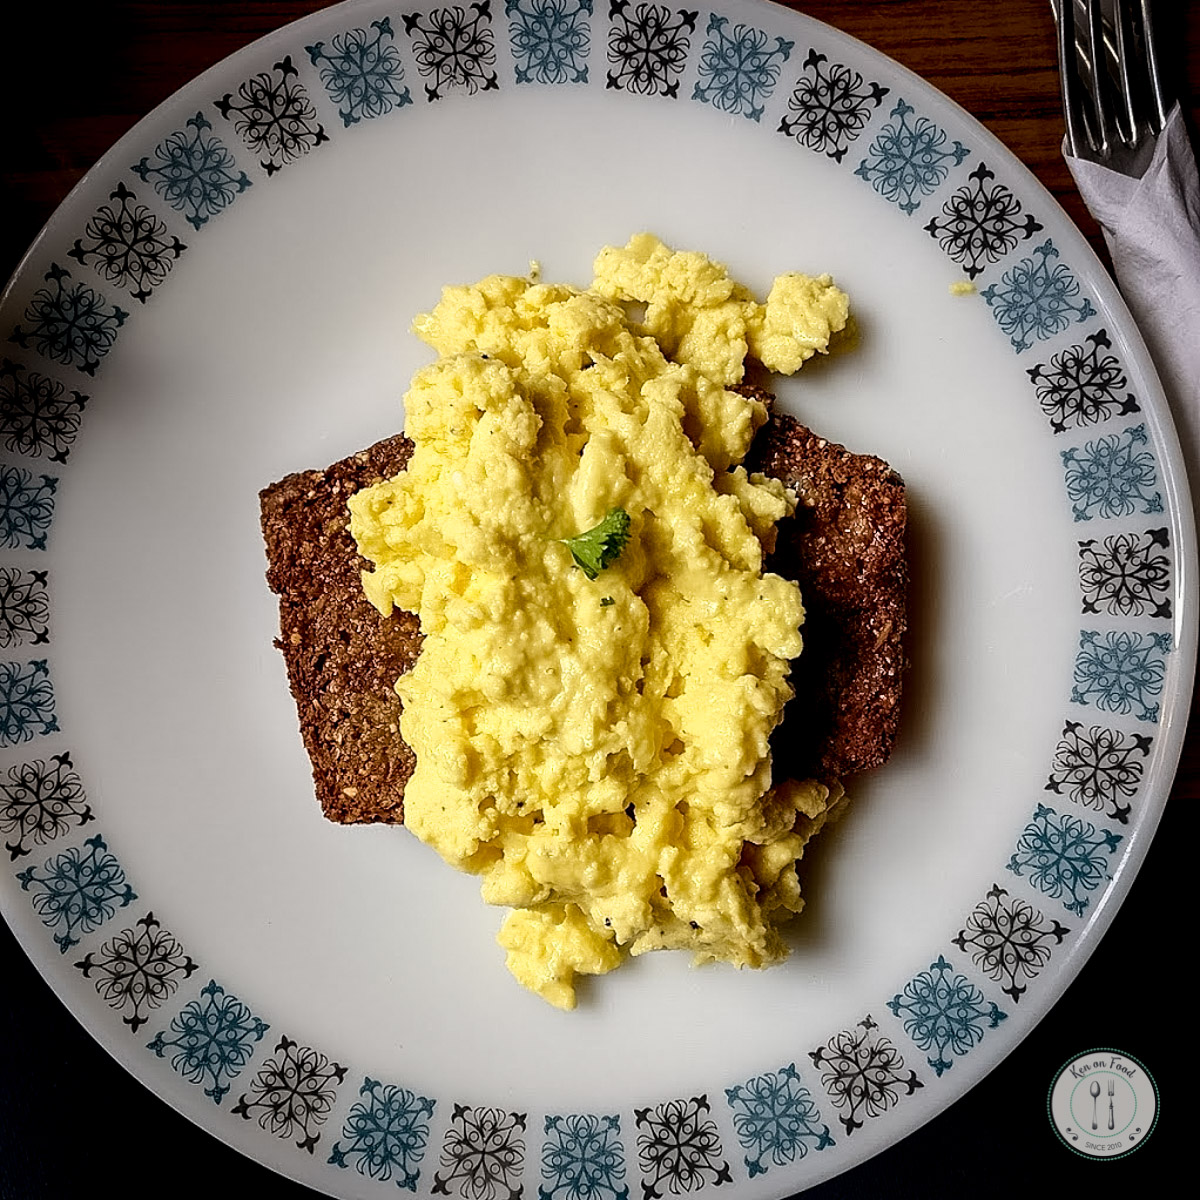 Scrambled egg with homemade brown bread at Fennelly's.